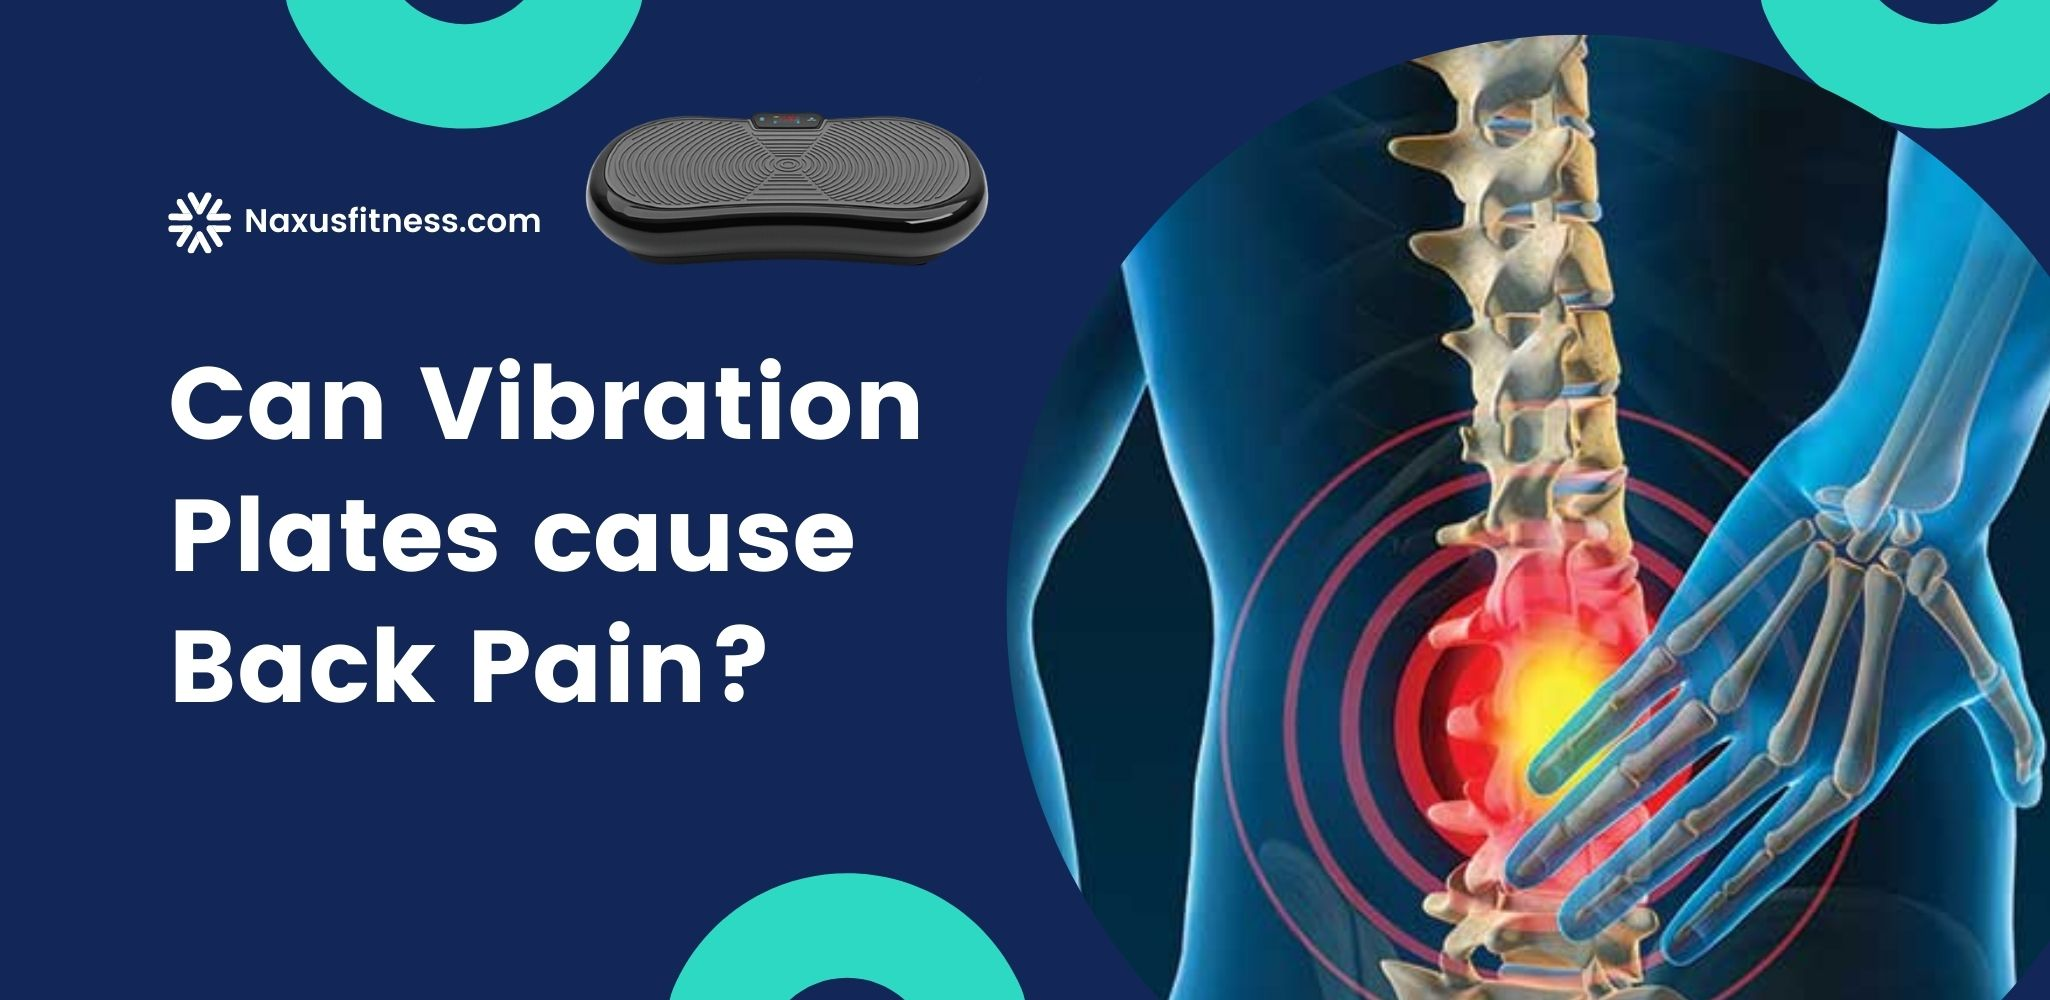 Can vibration plates cause back pain